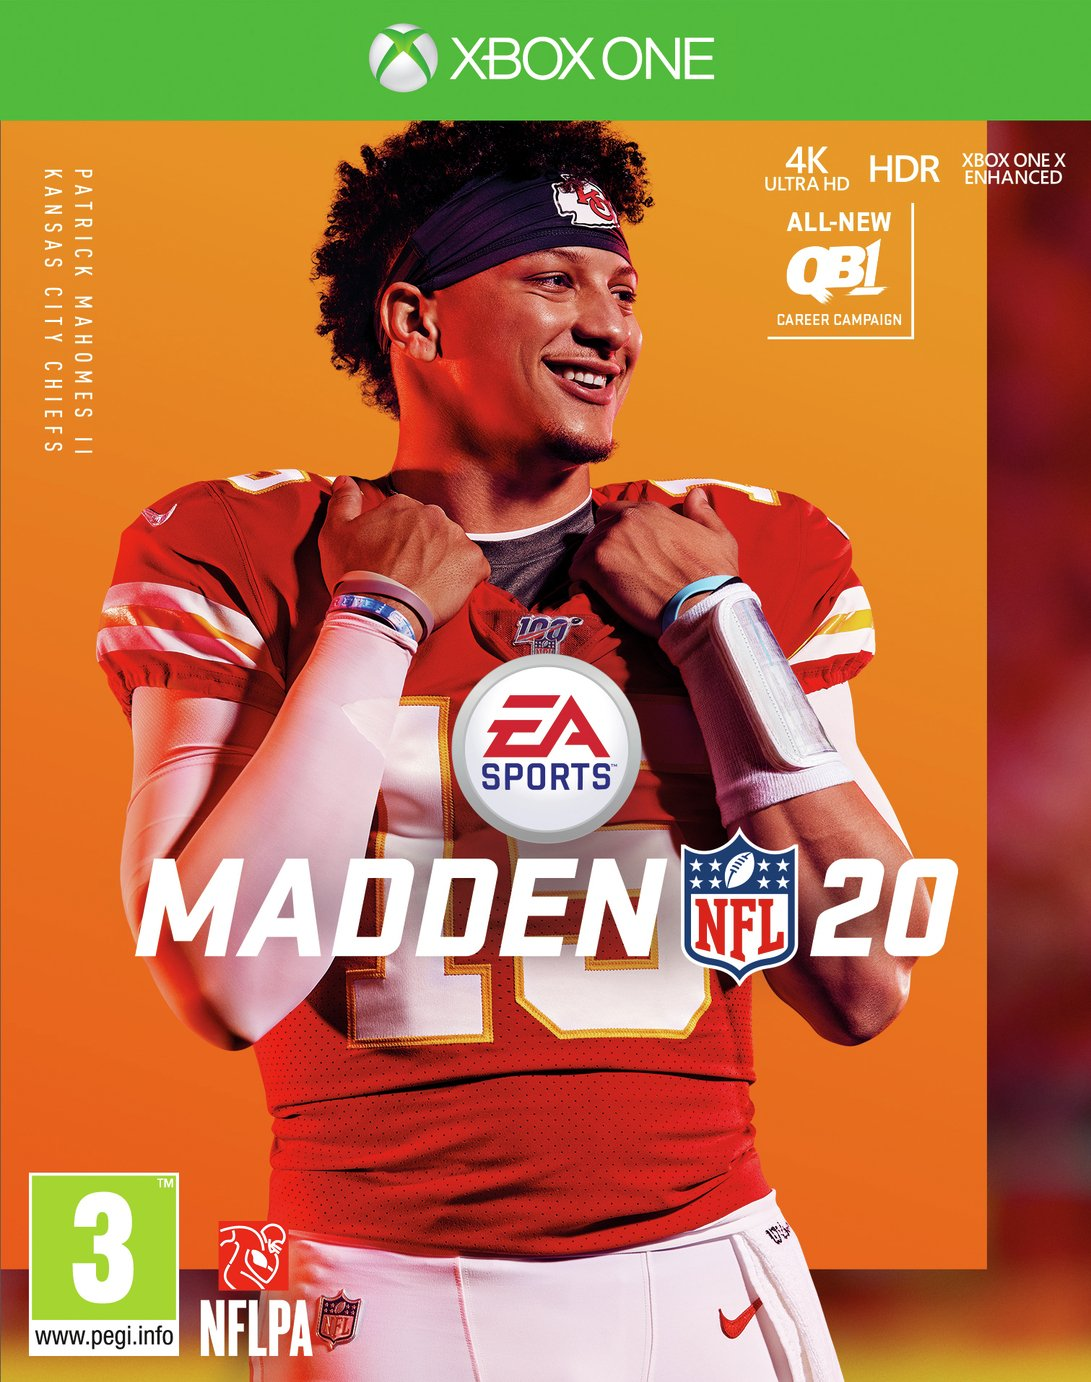 Madden NFL 20 Xbox One Pre-Order Game